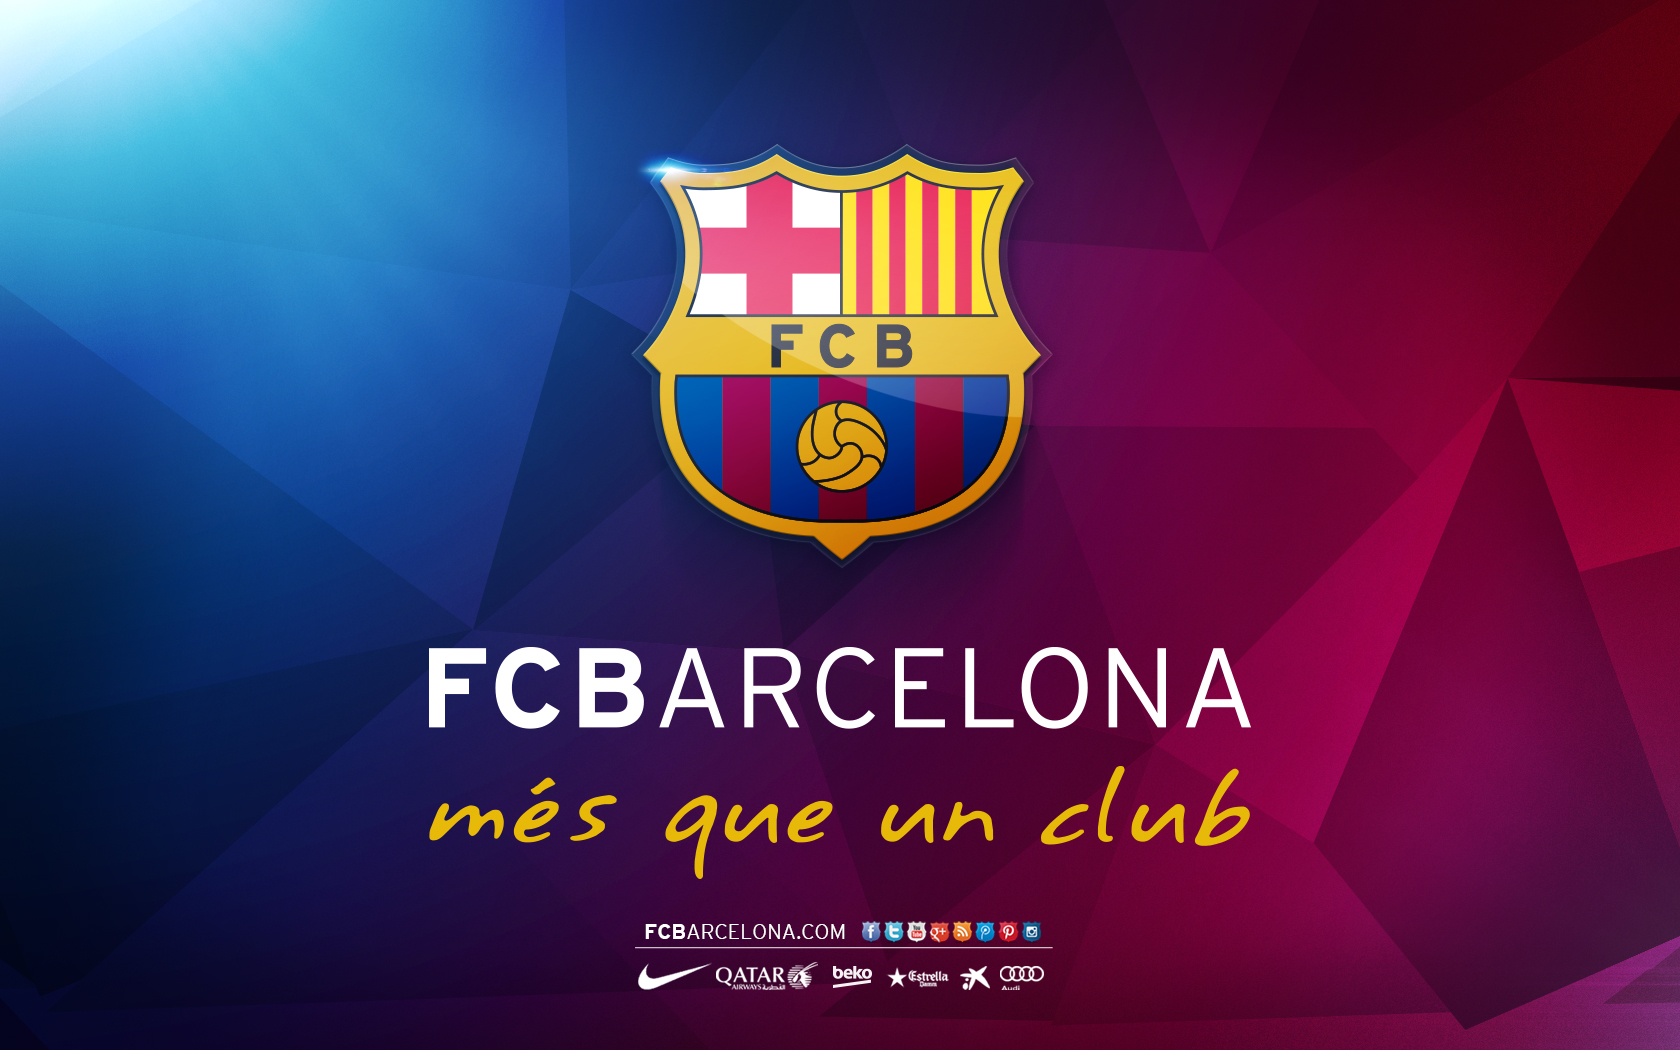 Wallpapers Wide With Quotes Fc Barcelona Mes Que Un Club Logo Wallpapers